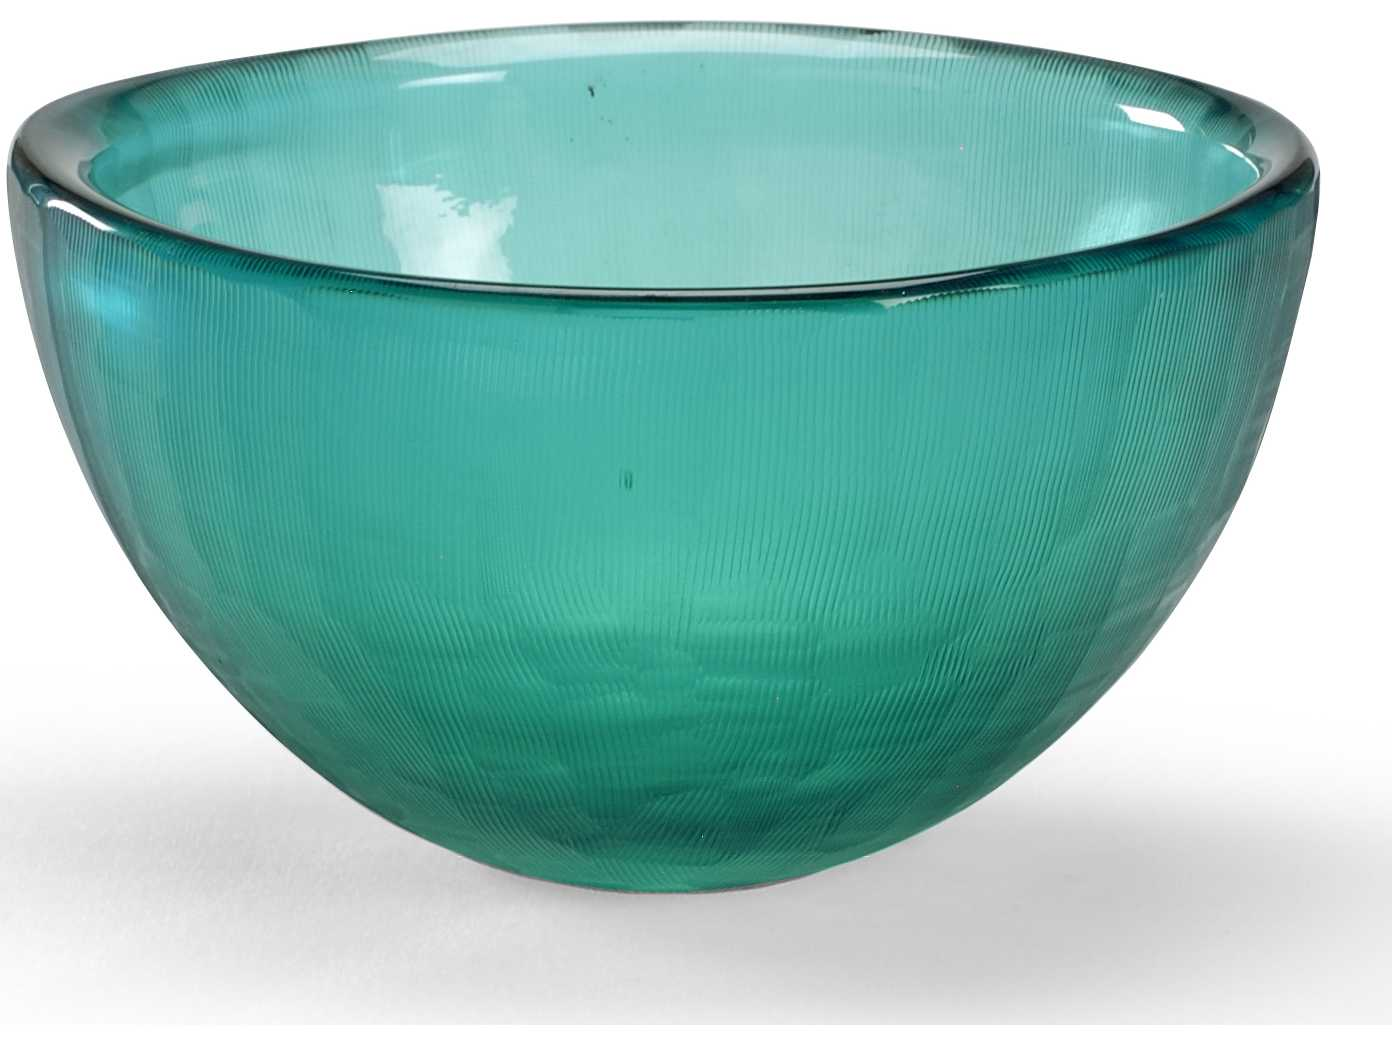 wildwood lamps centrepiece glass bowl grey blue with lines c